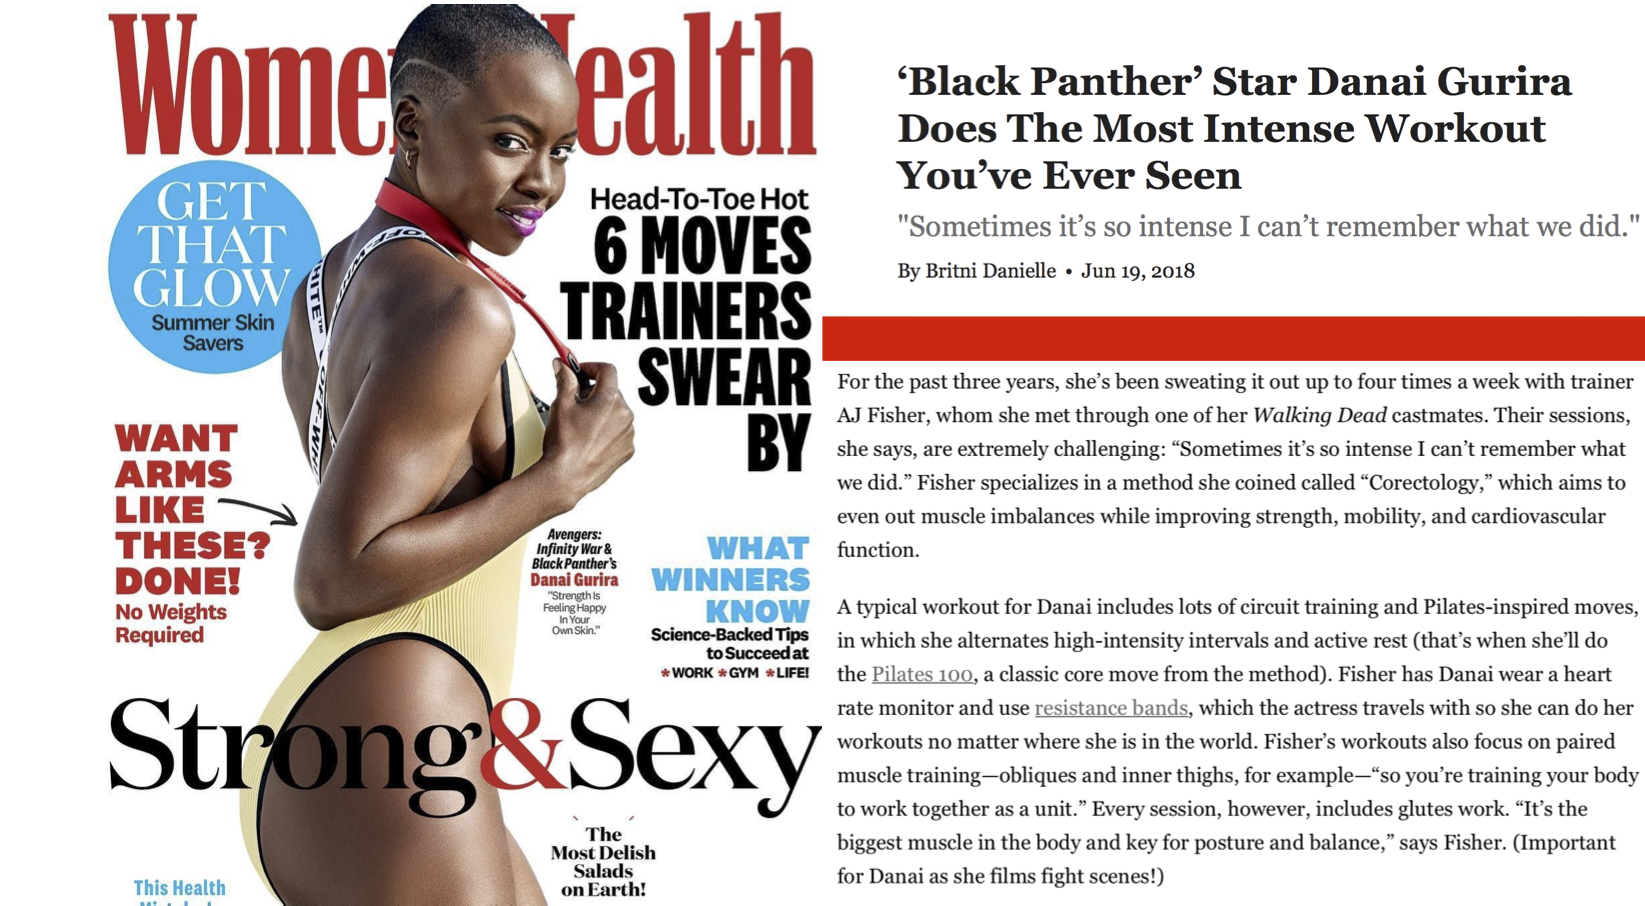 """Also see """"'Black Panther' Star Danai Gurira's Trainer Swears By These 5 Moves"""" HERE"""